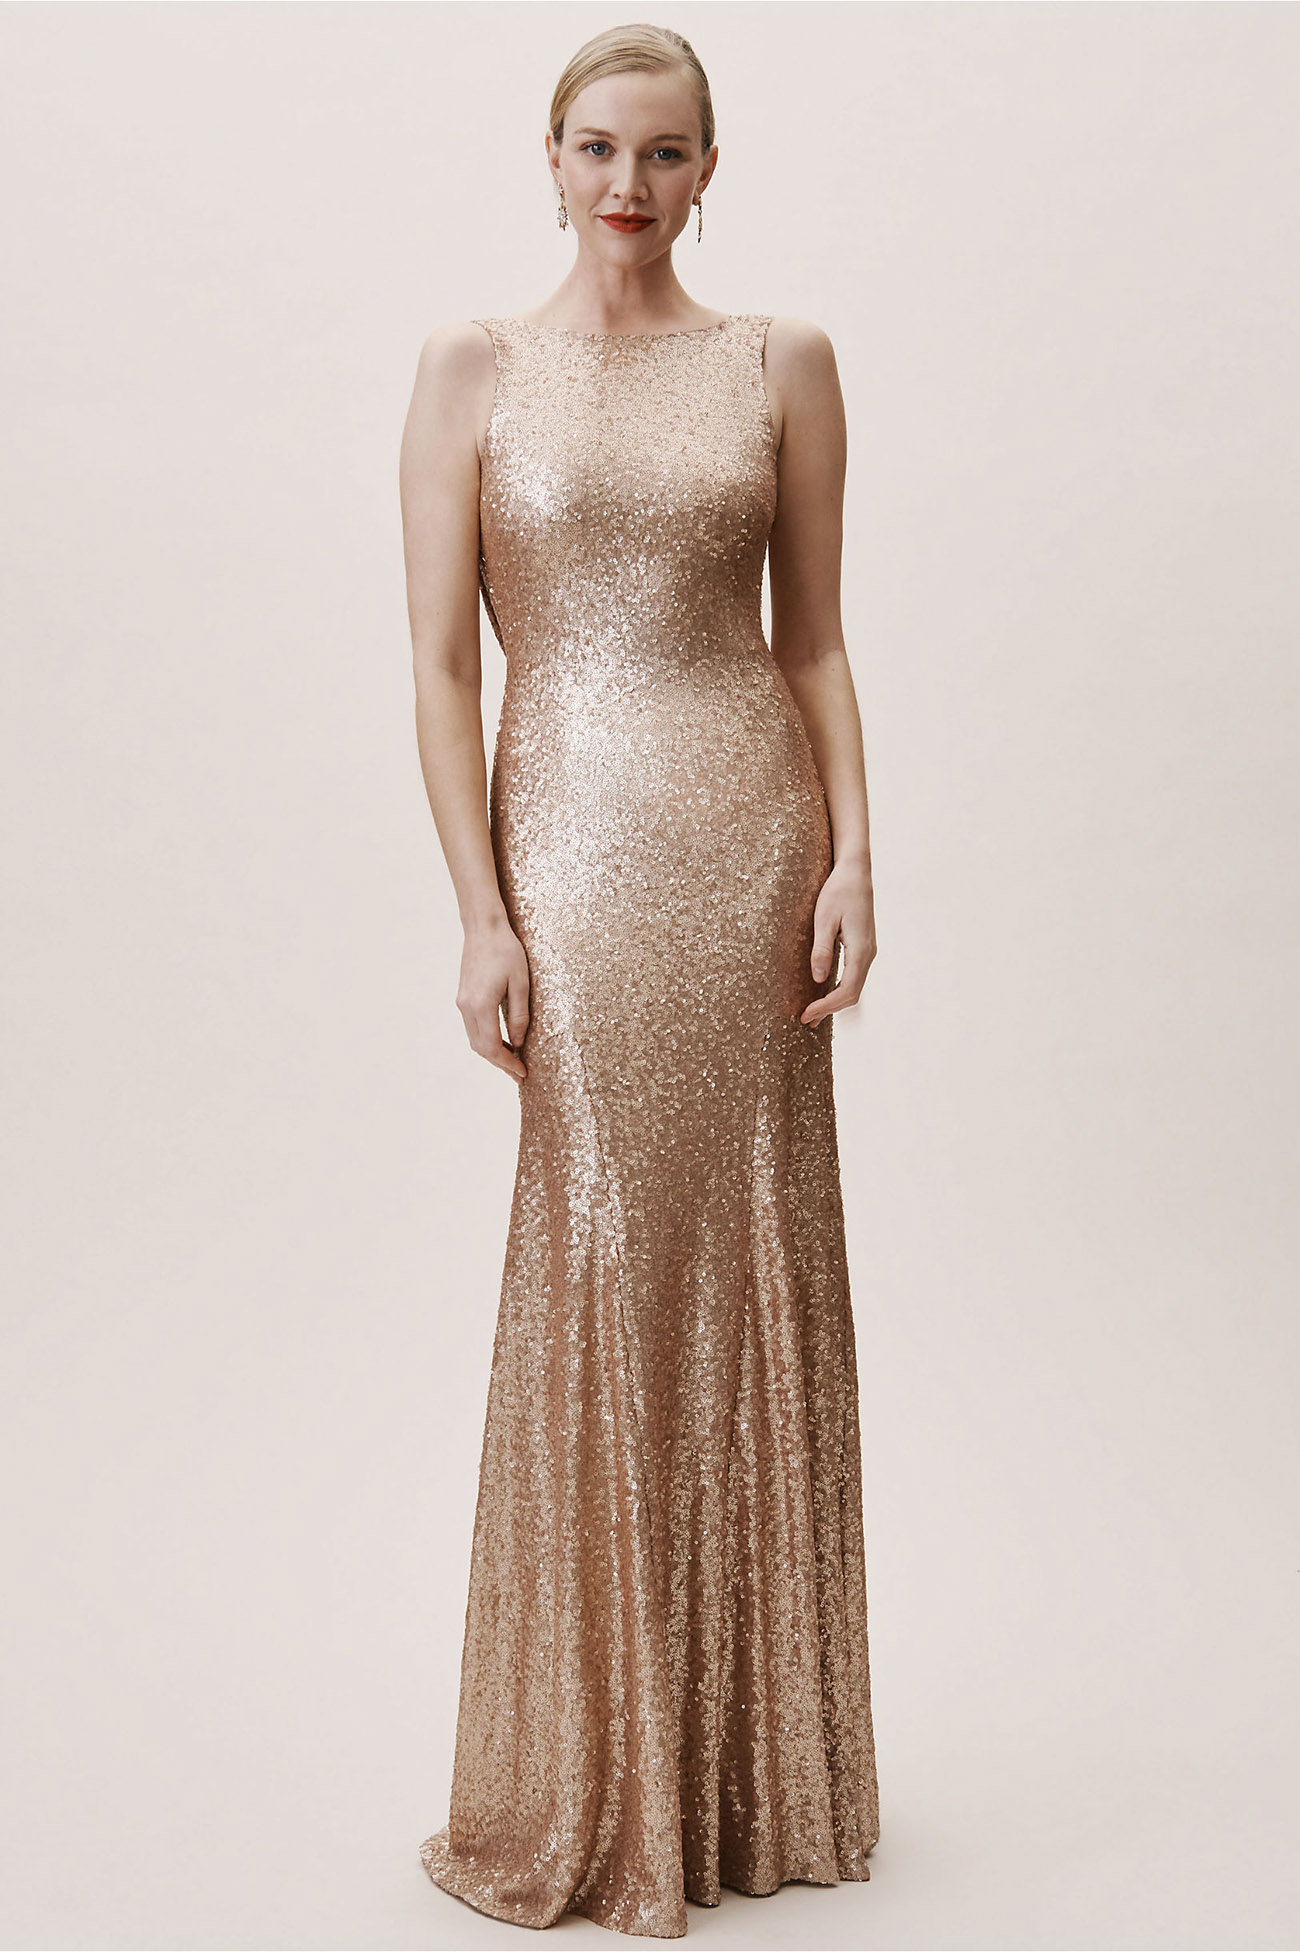 Gemma Bridesmaids Dress in Rose Gold Metallic from BHLDN